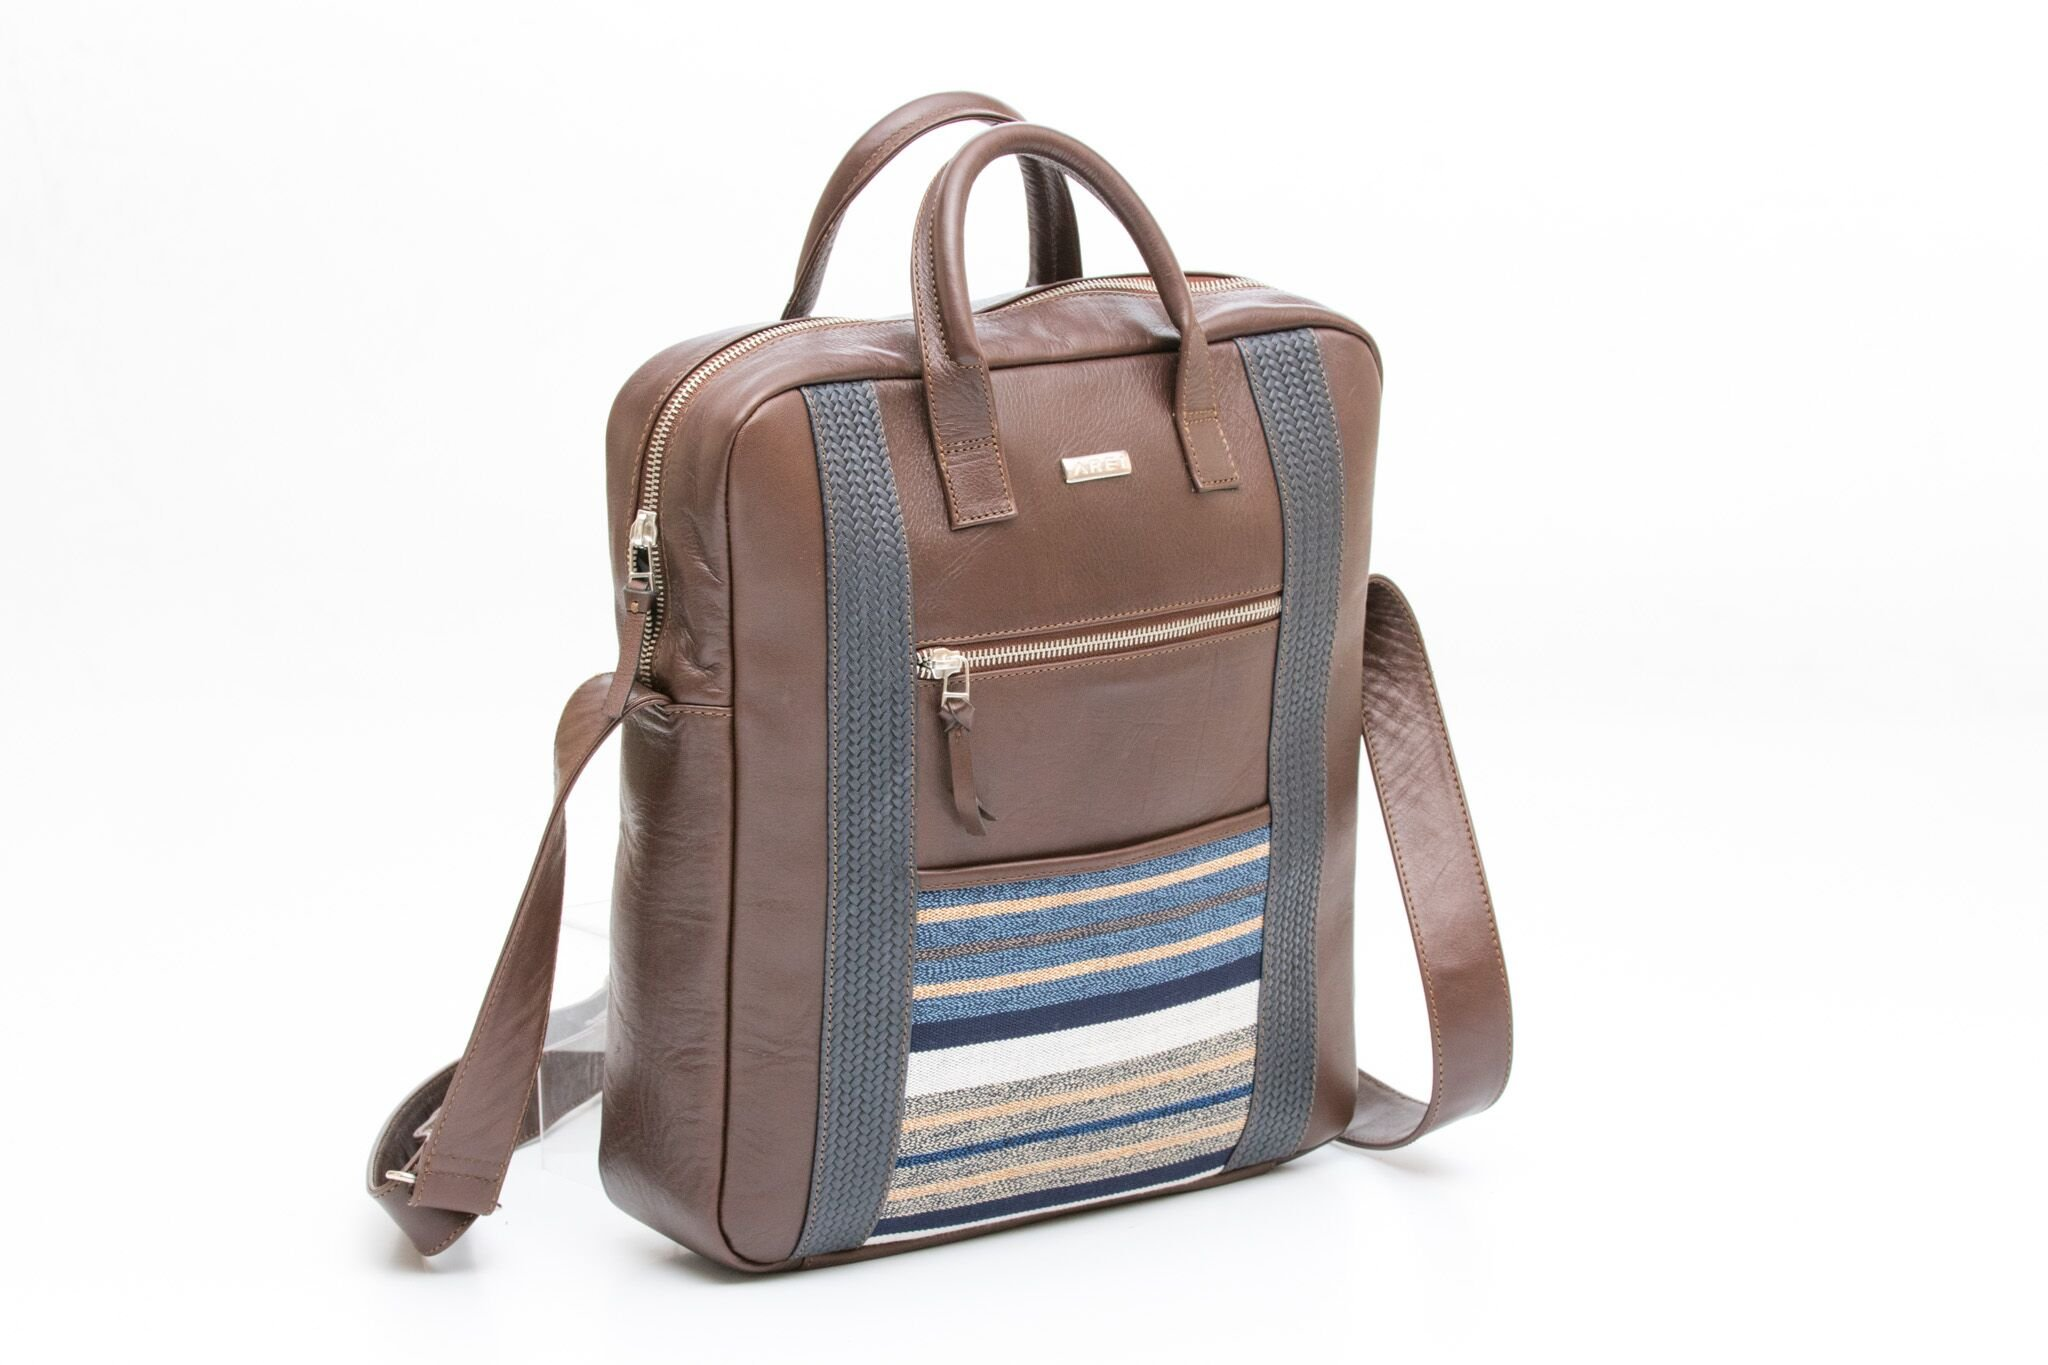 MORRAL Leather and Cotton Messenger Bag (Brown)